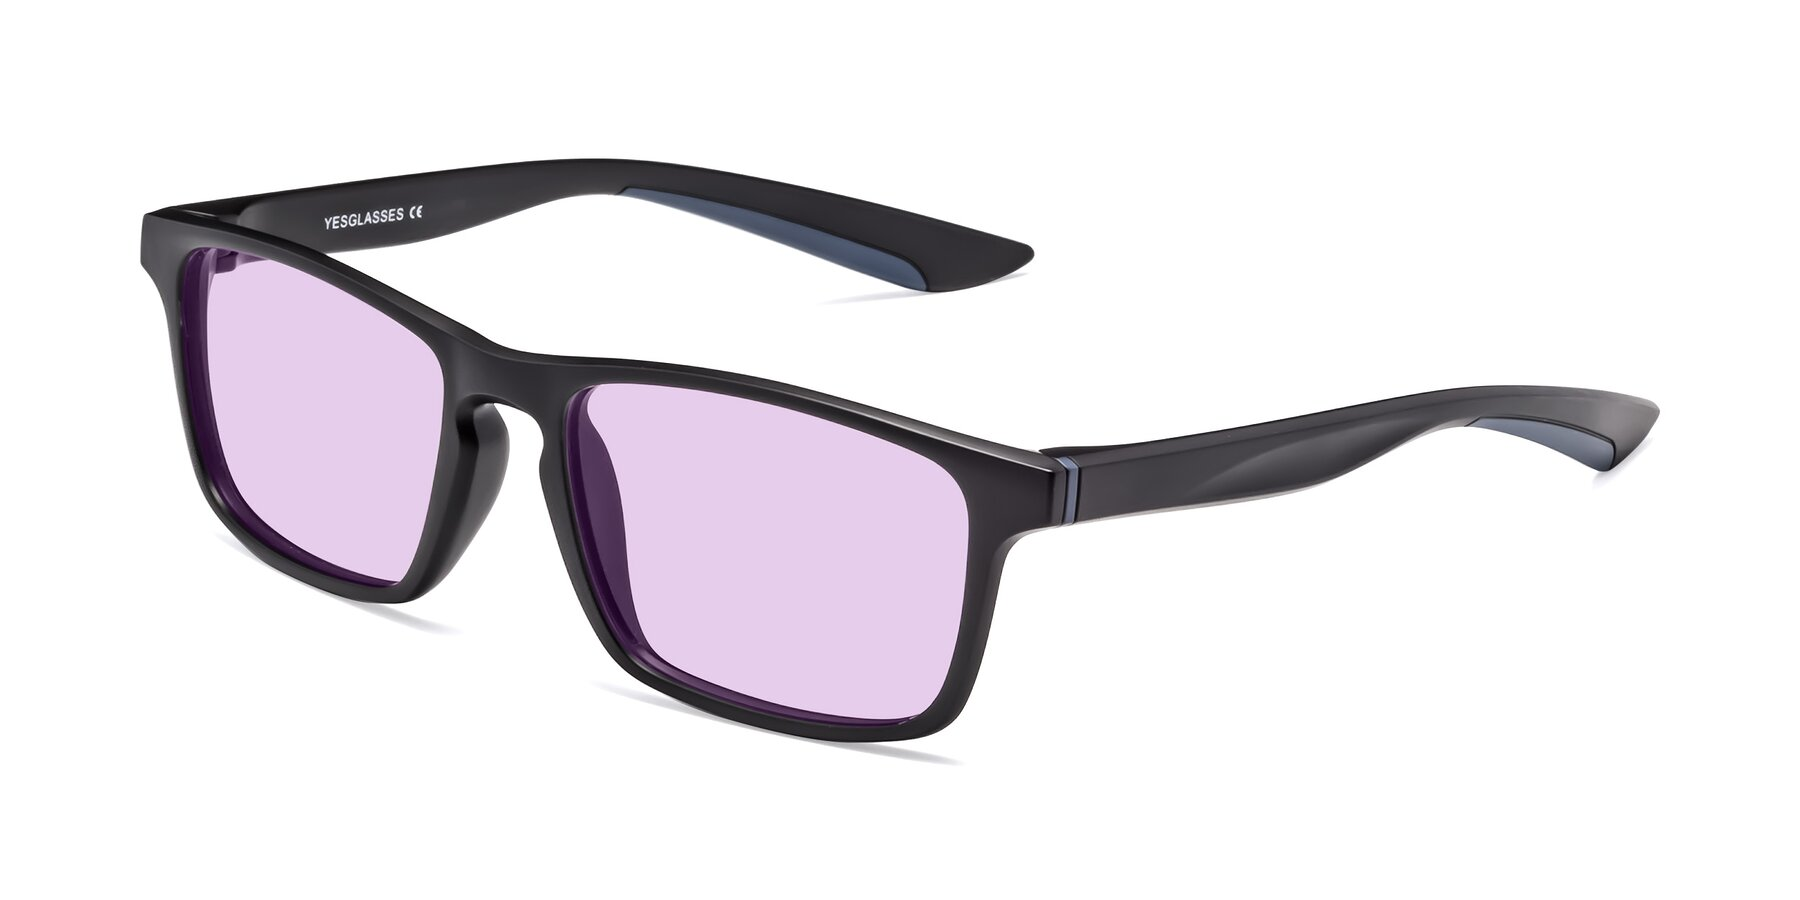 Angle of Passion in Matte Black-Blue with Light Purple Tinted Lenses